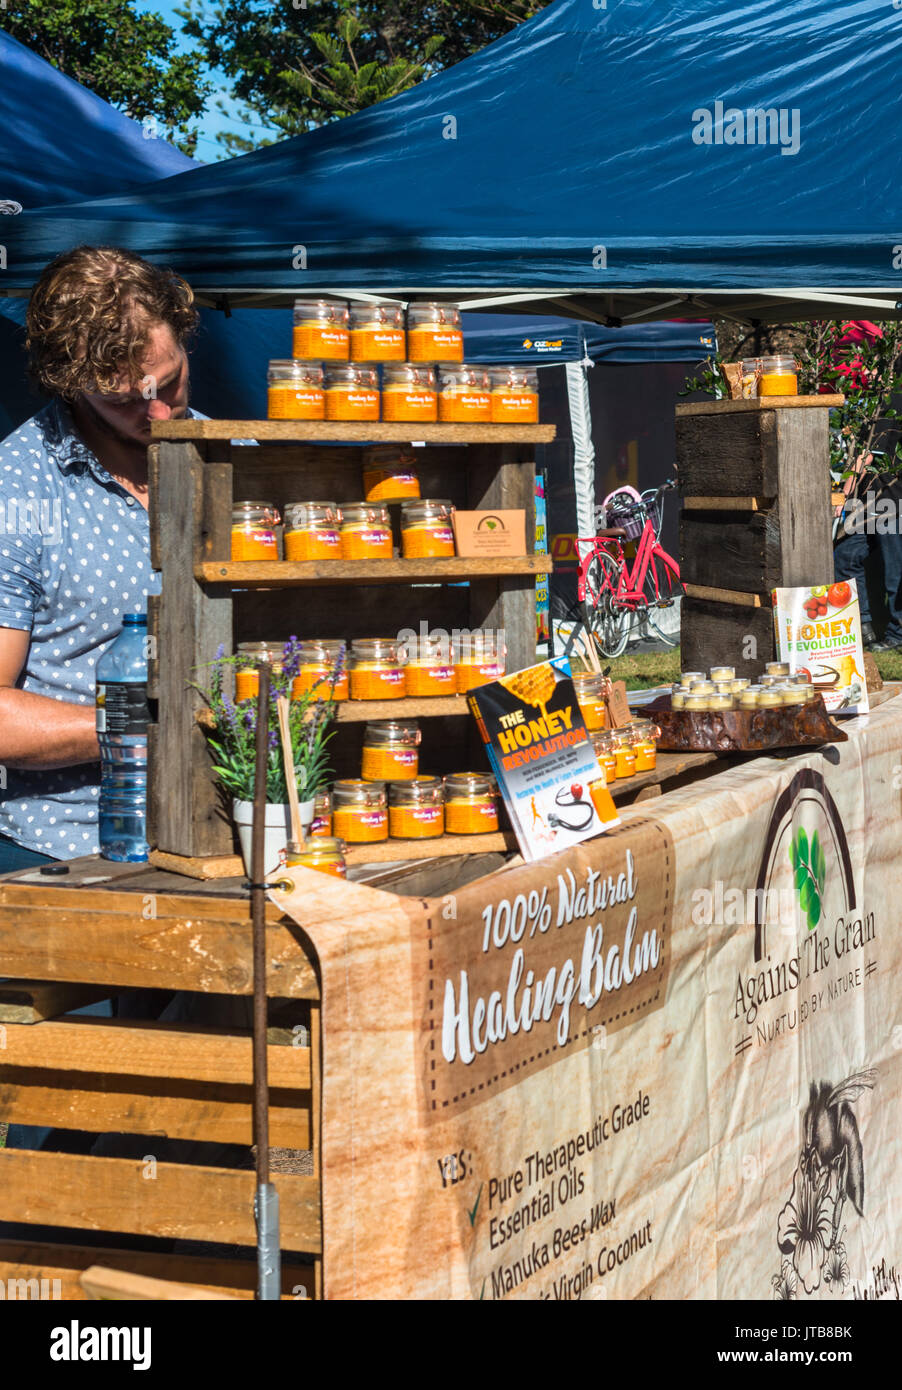 Healing balm made of local honey at Harbourside markets at Coffs Harbour, New South Wales, Australia. - Stock Image